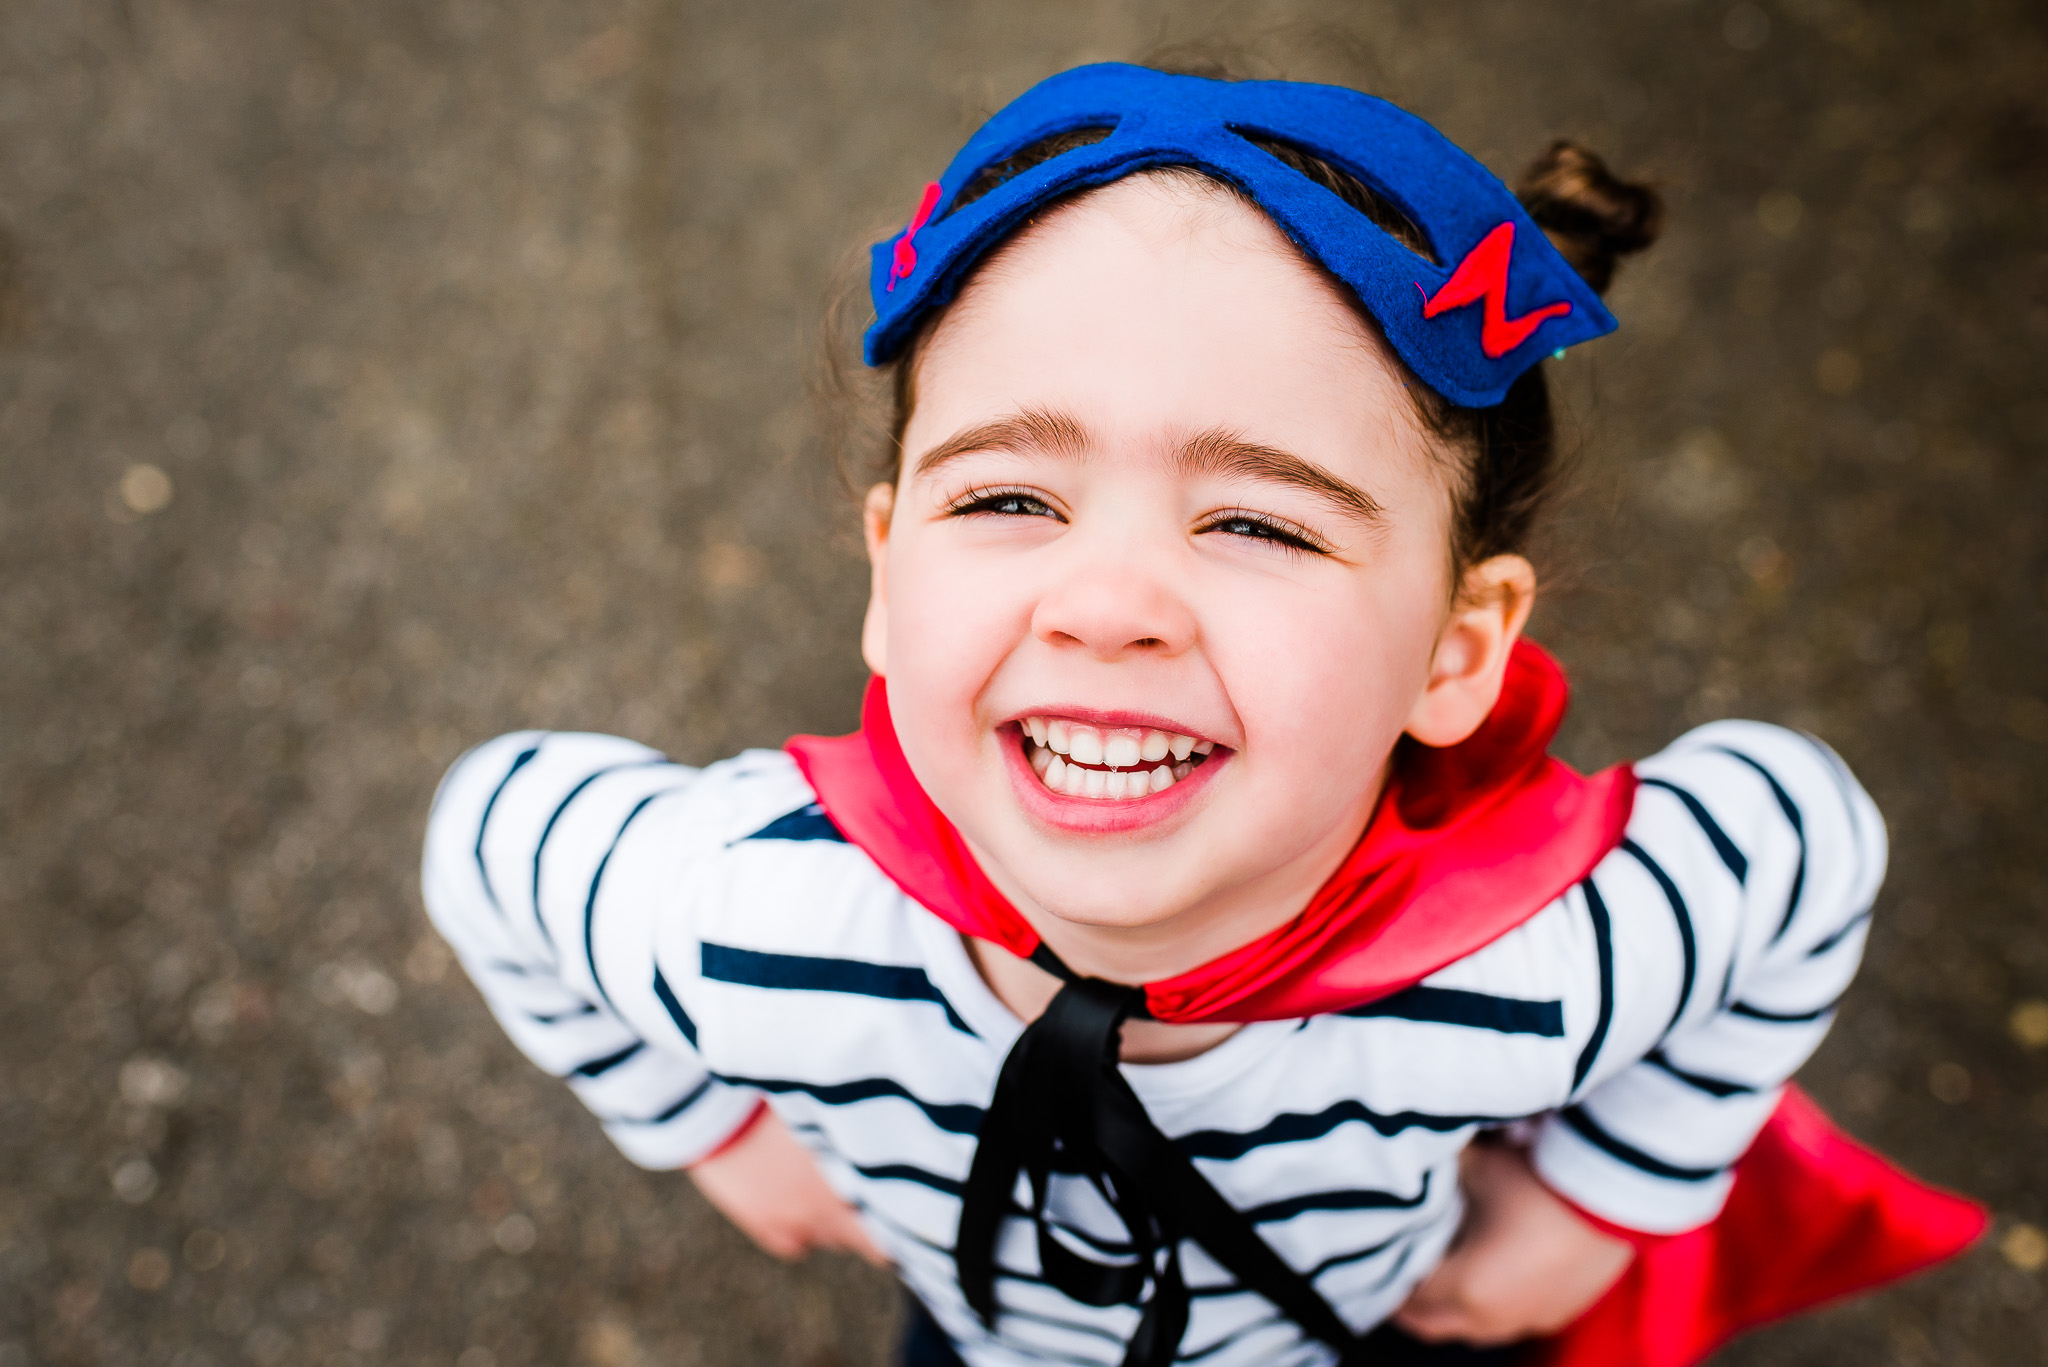 Copy of Toddler smiling. Beautiful child portrait.